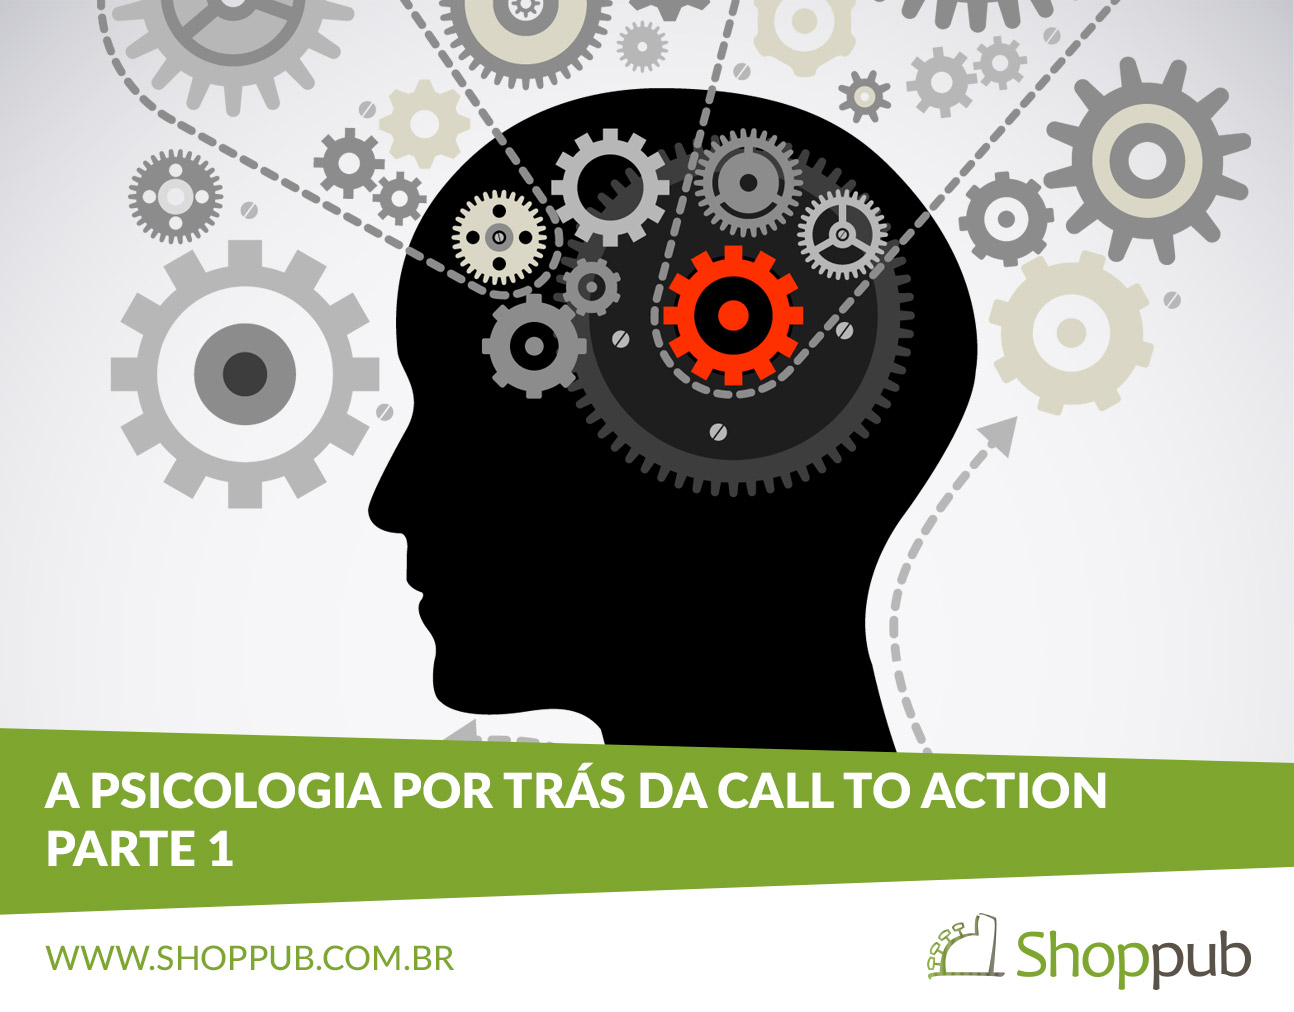 A psicologia por trás da Call to Action